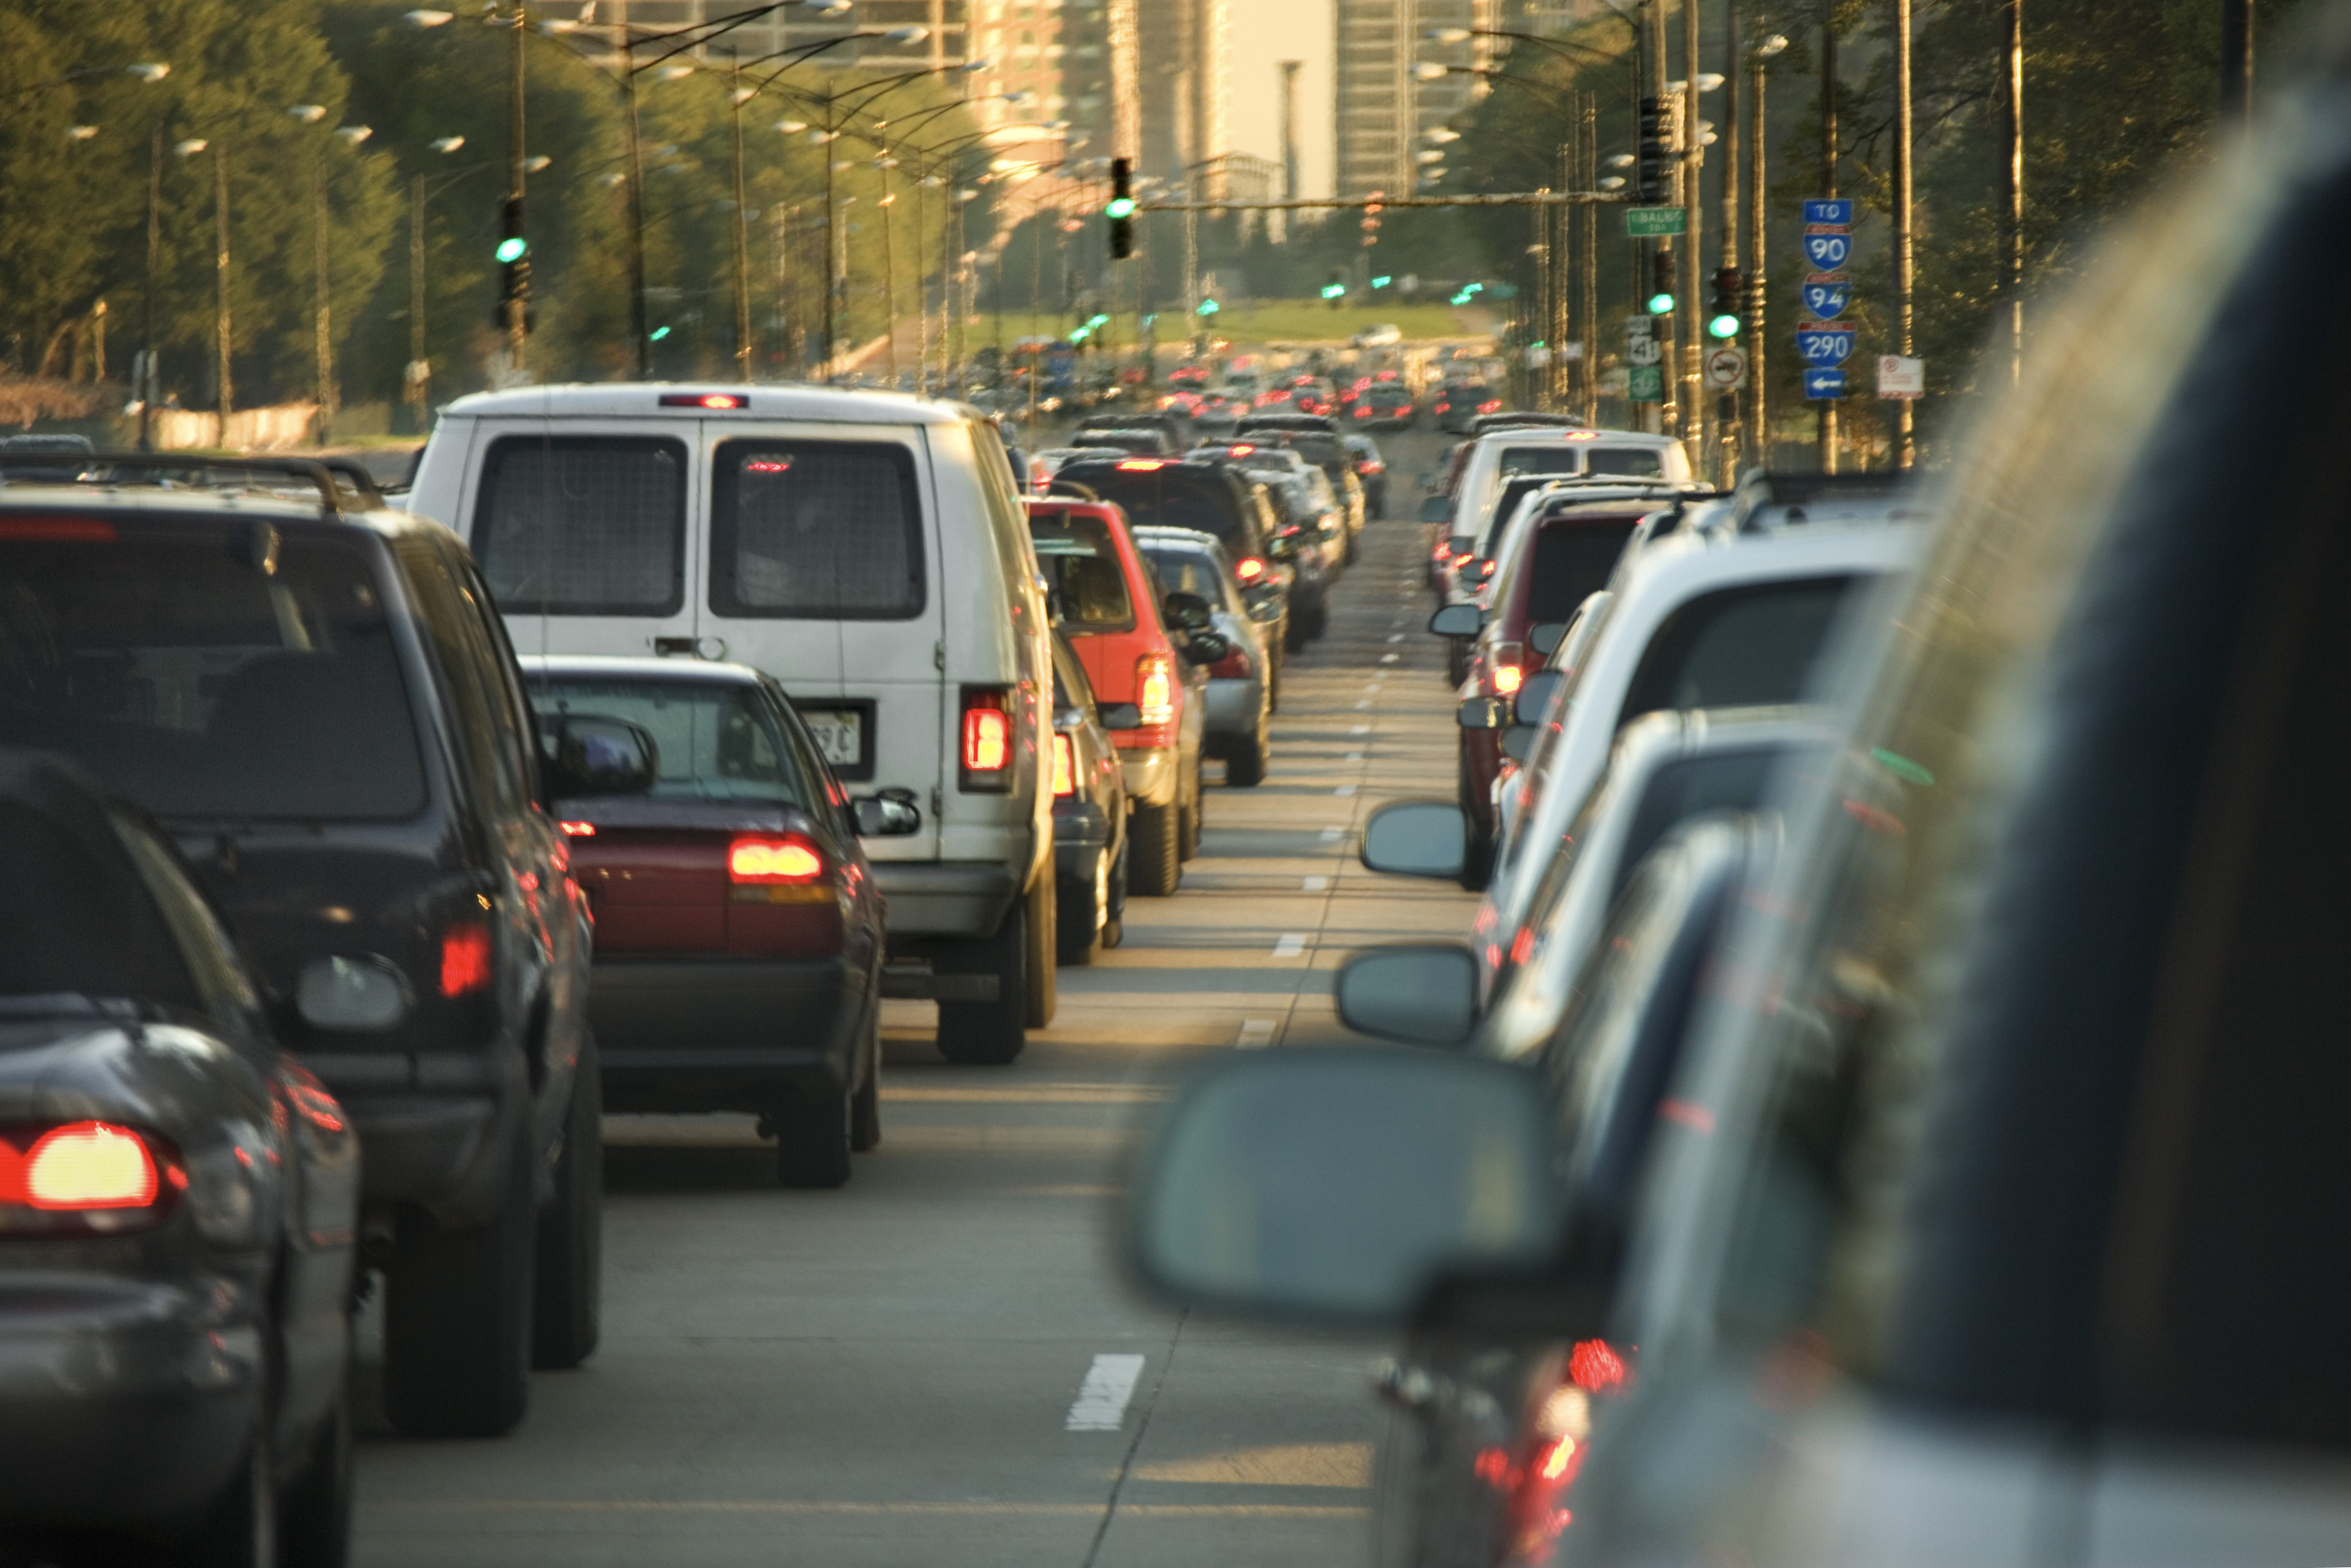 Traffic jam in downtown Chicago